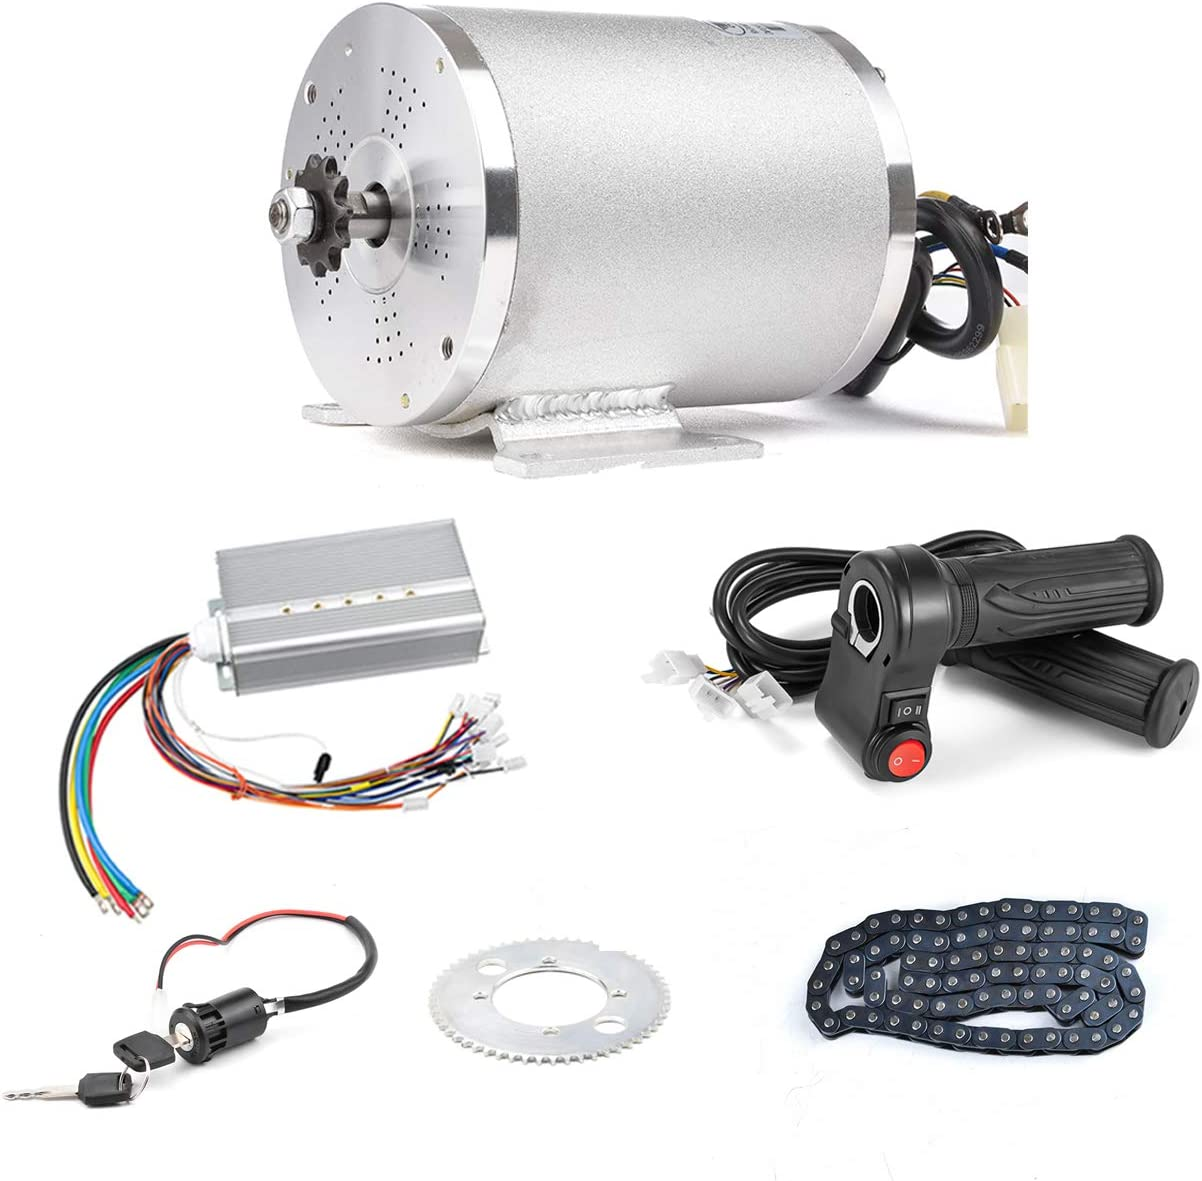 Kunray BLDC 72V 3000W Brushless Motor Kit